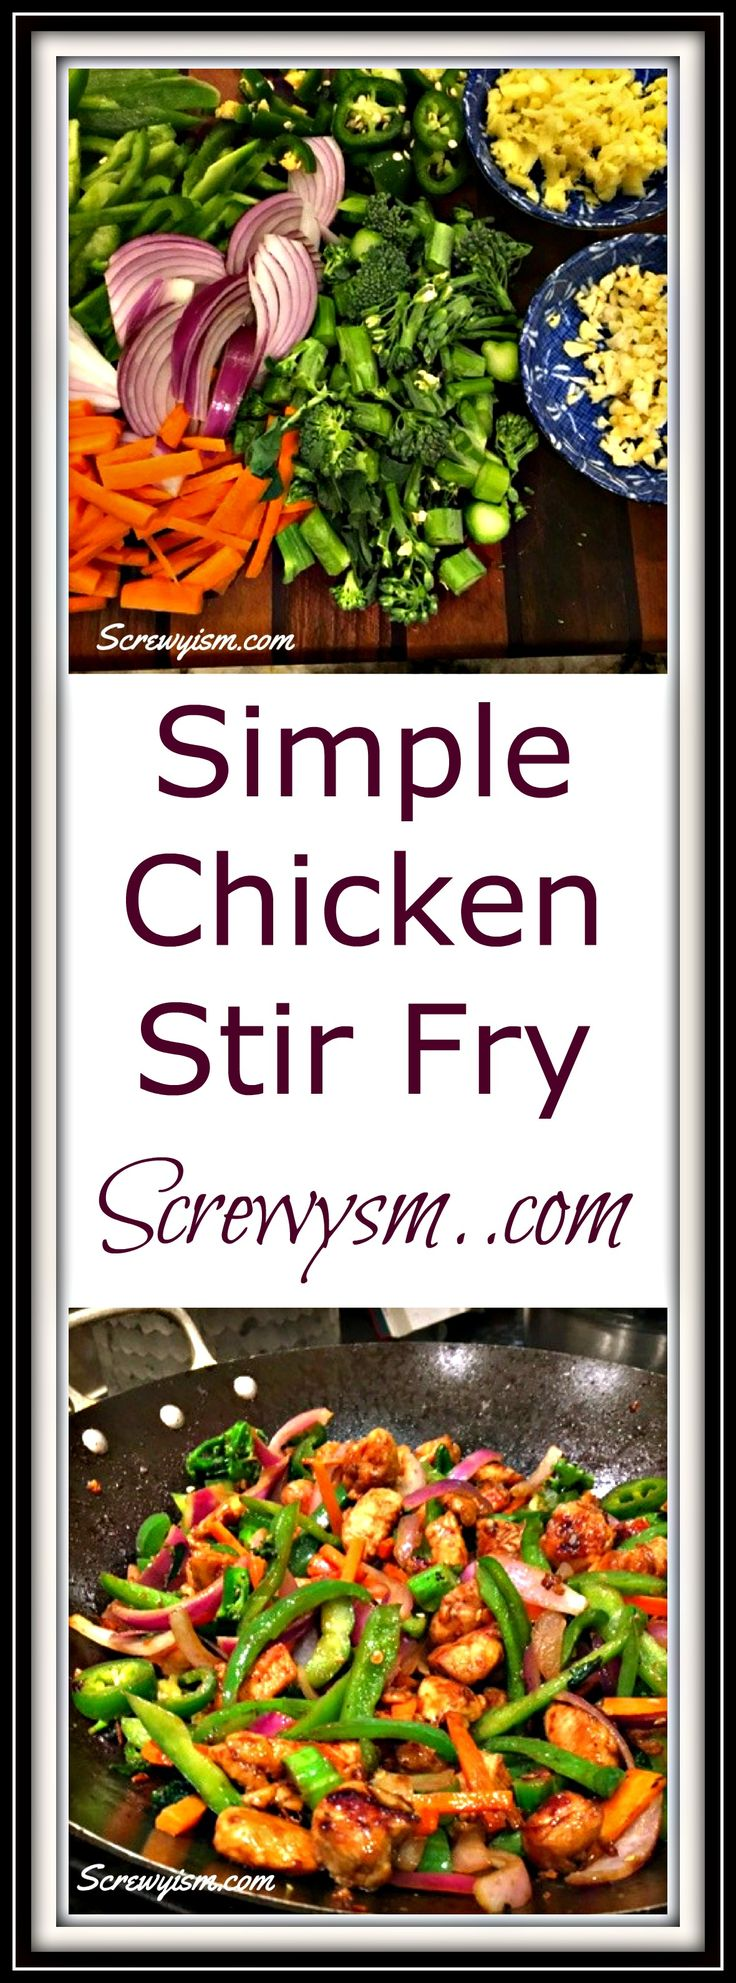 A simple chicken stir fry you can make at home with wholesome ingredients, simple, healthy and cheaper than takeout stir fry.